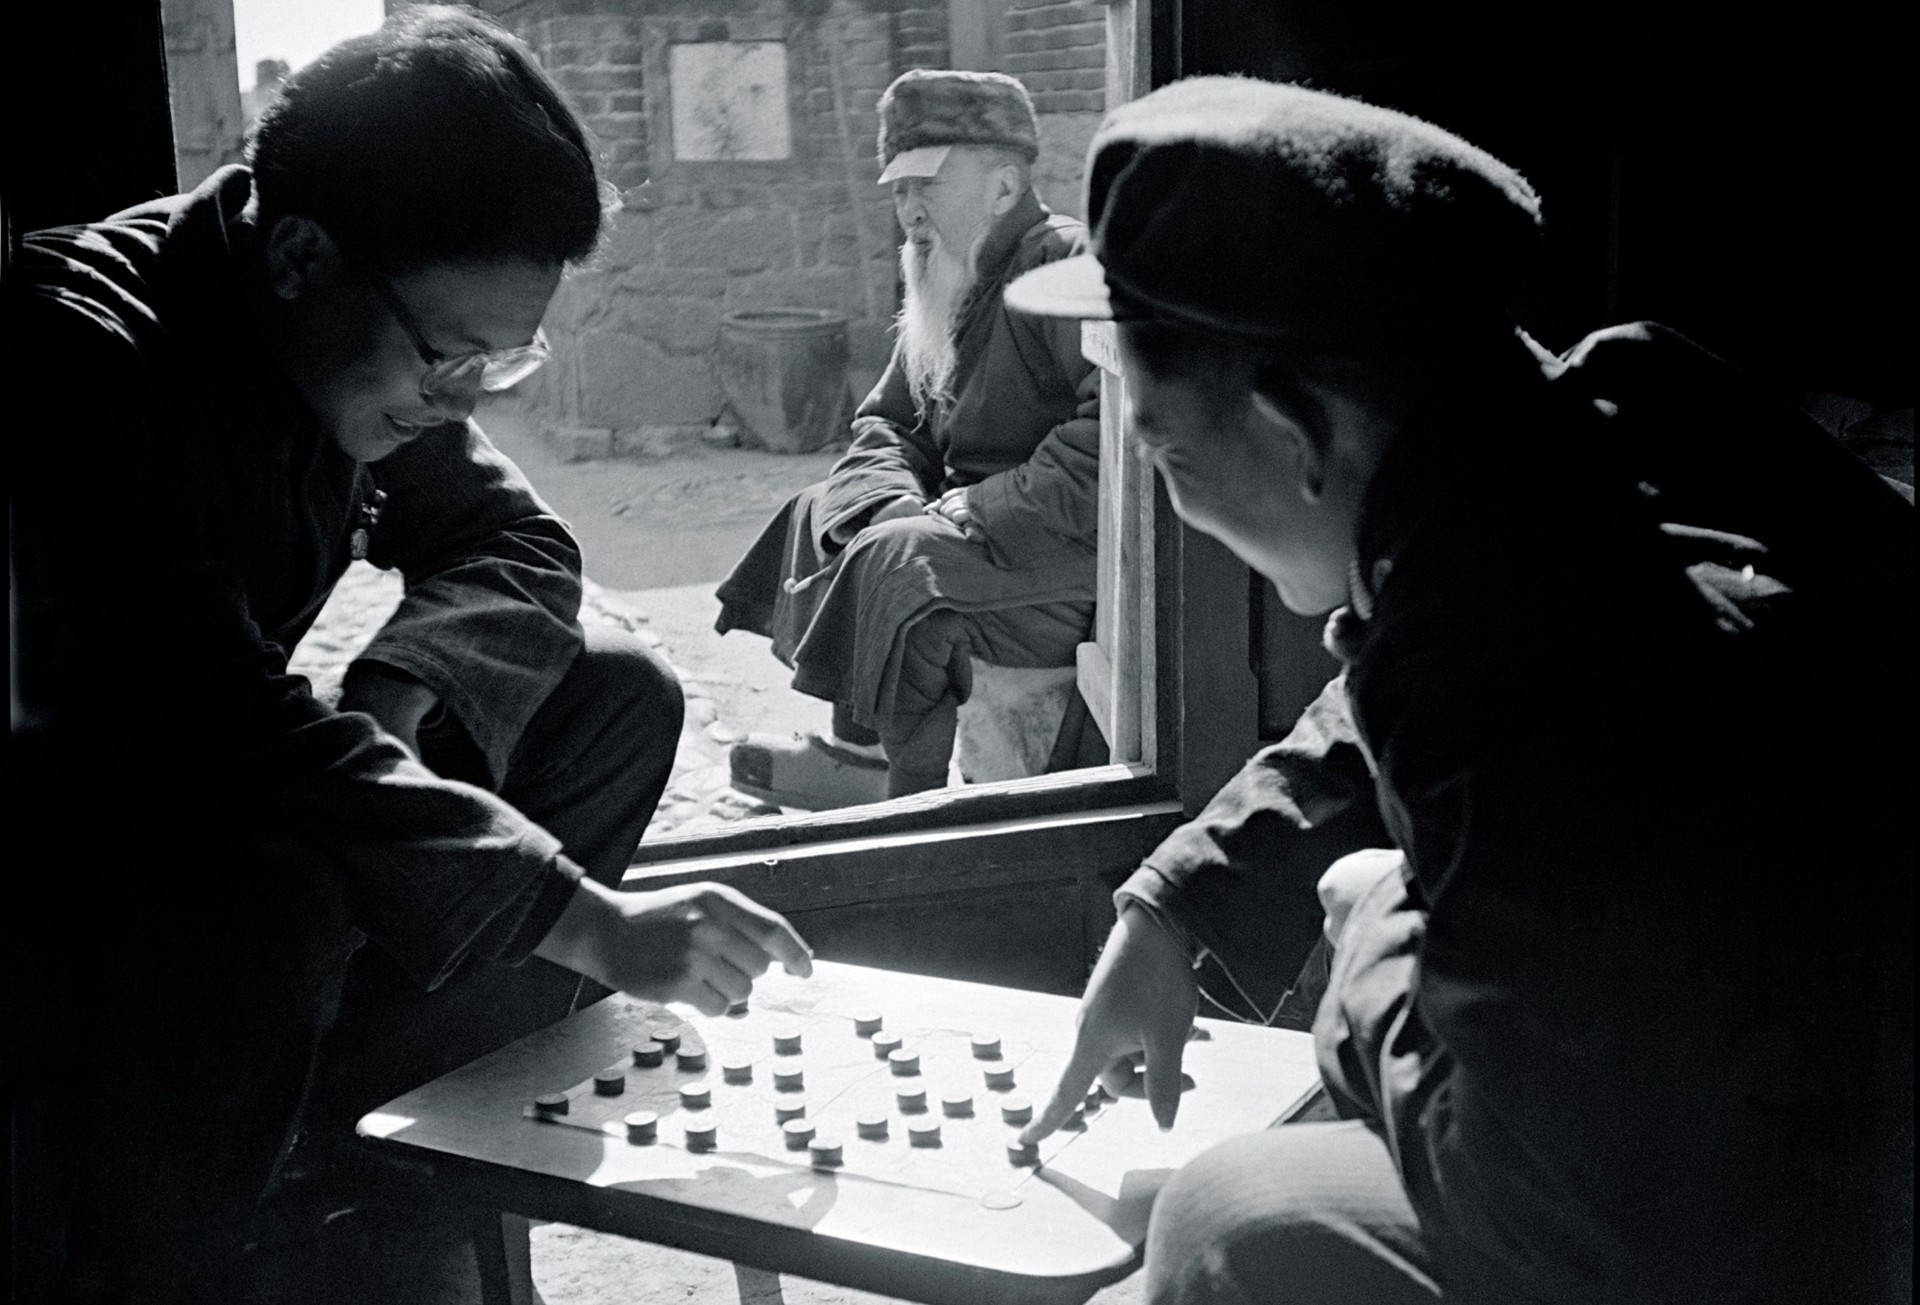 The future and the past of China during the Cultural Revolution